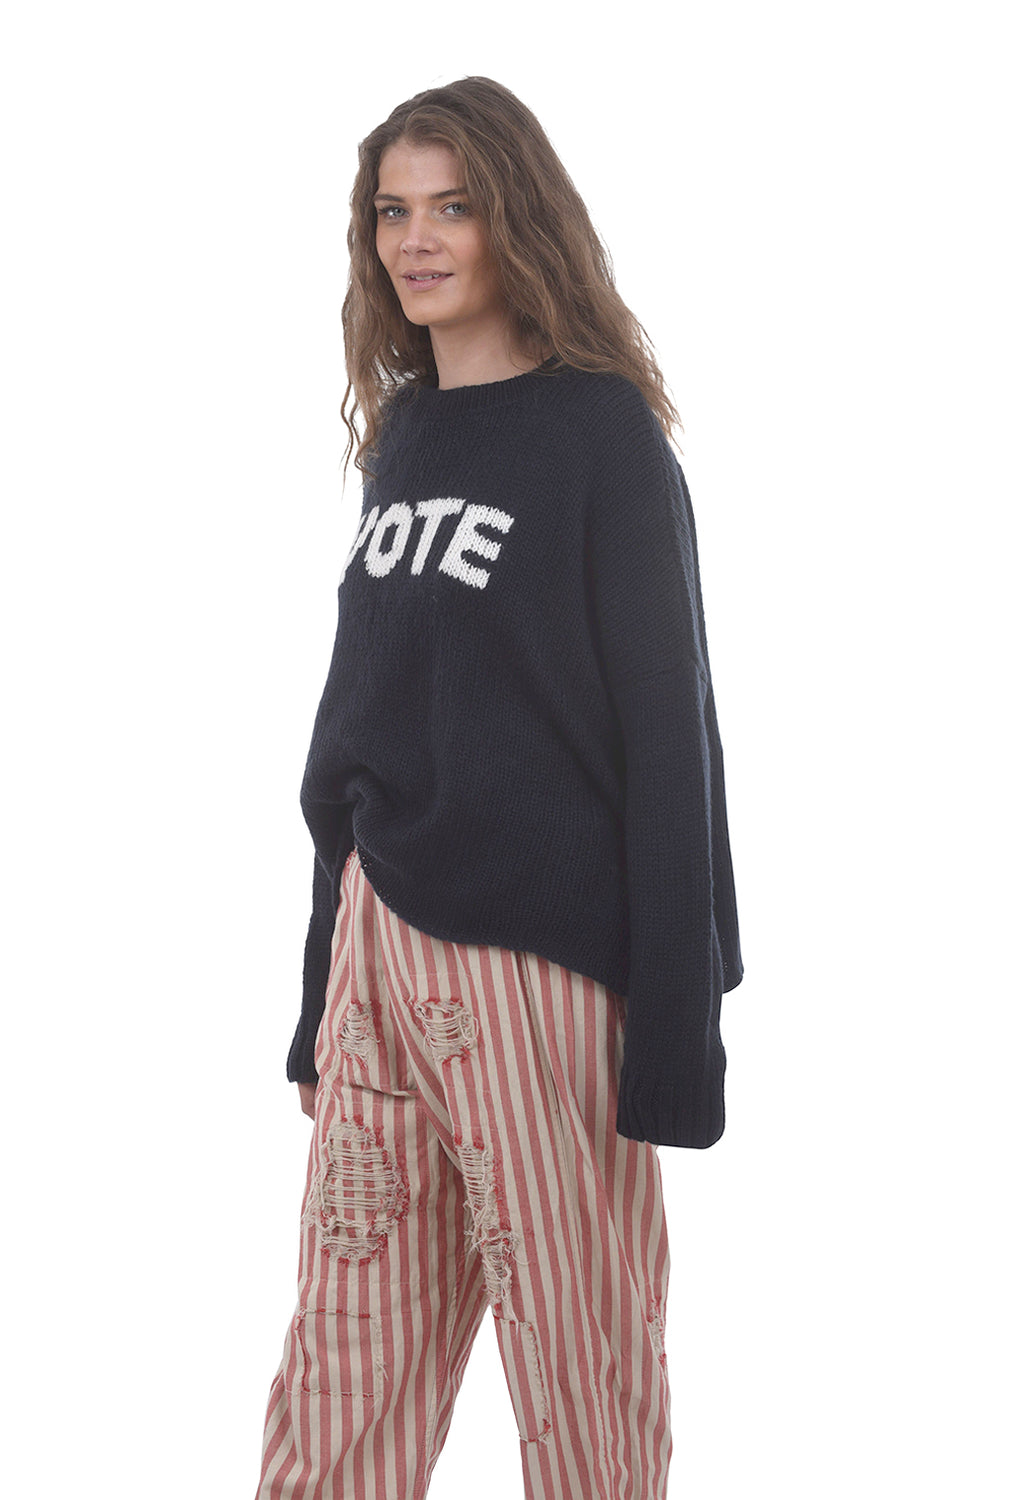 Wooden Ships VOTE Chunky Sweater, Midnight Blue